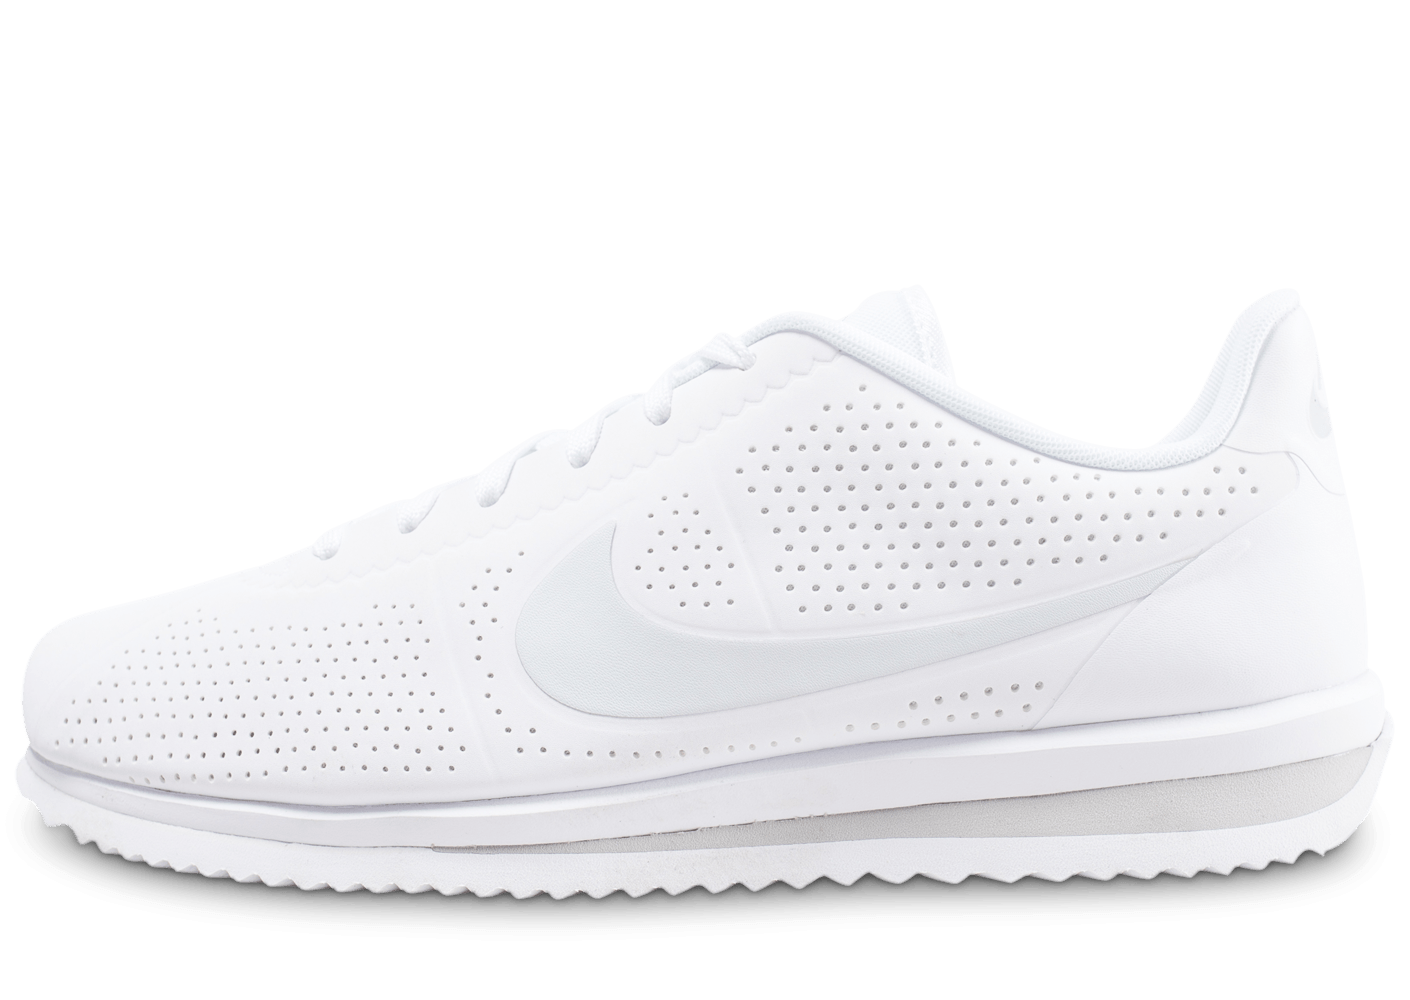 1ed846ad2ae Nike Cortez Ultra Moire blanche - Chaussures Baskets homme - Chausport